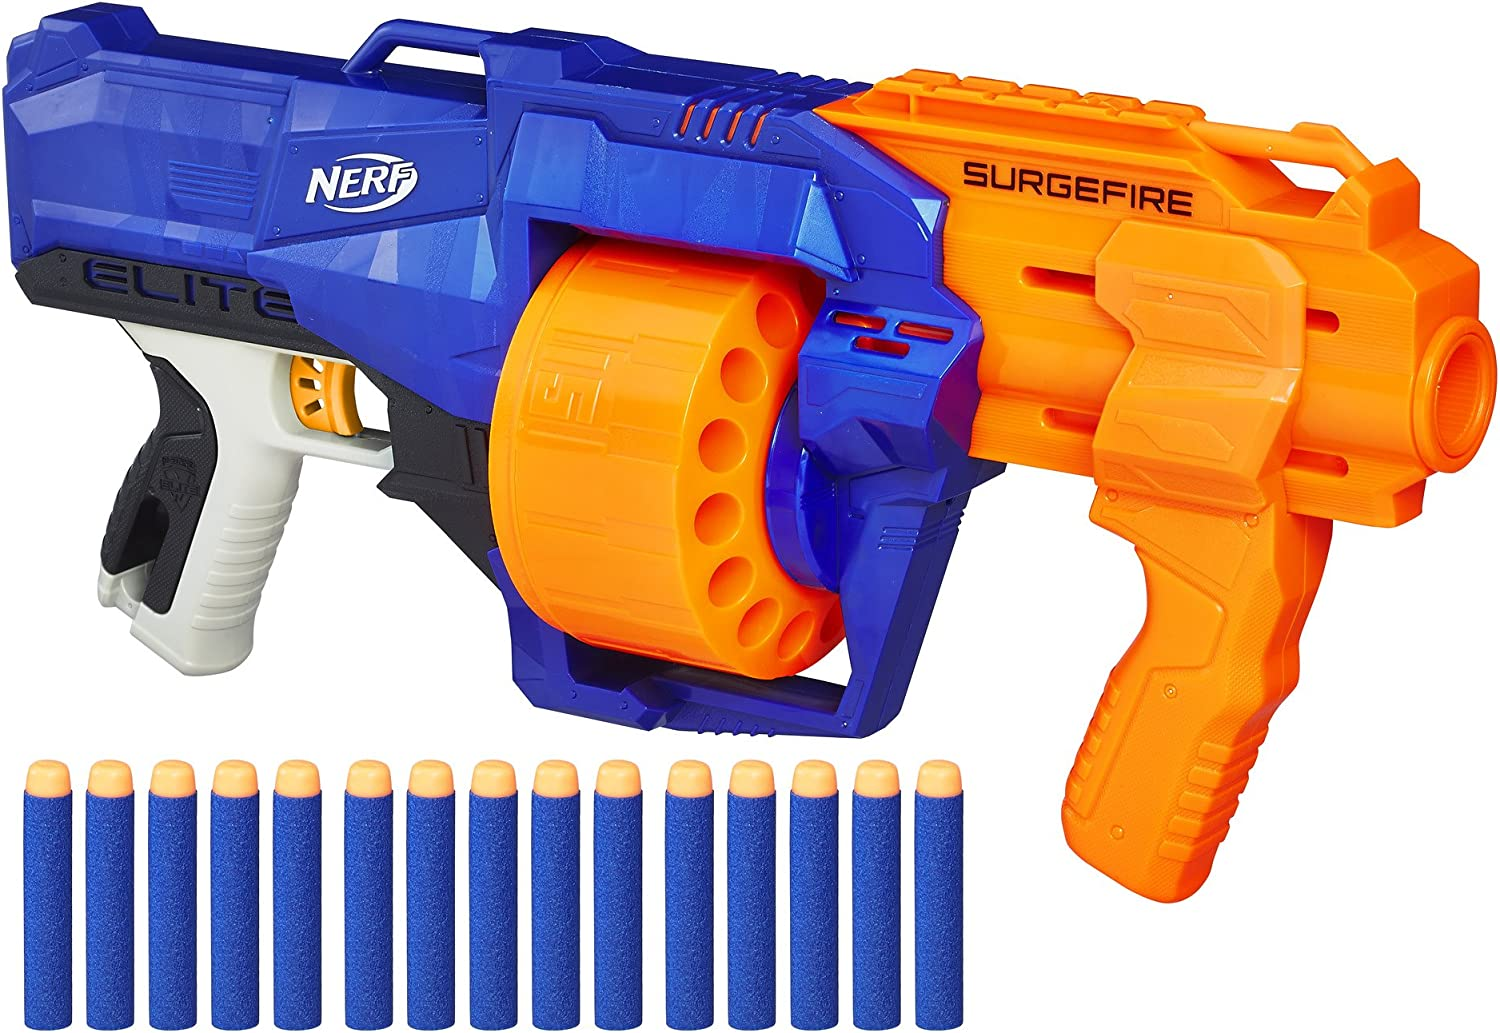 nerf online,nerf products,nerf store near me,nerf brand,nerf under 10,nerf toys near me,where can i buy nerf guns near me,all nerf products ever made,best nerf,nerf parts shop,the best nerf,what is nerf made of,nerf store,new nerf products,www nerf com shop,what is nerf